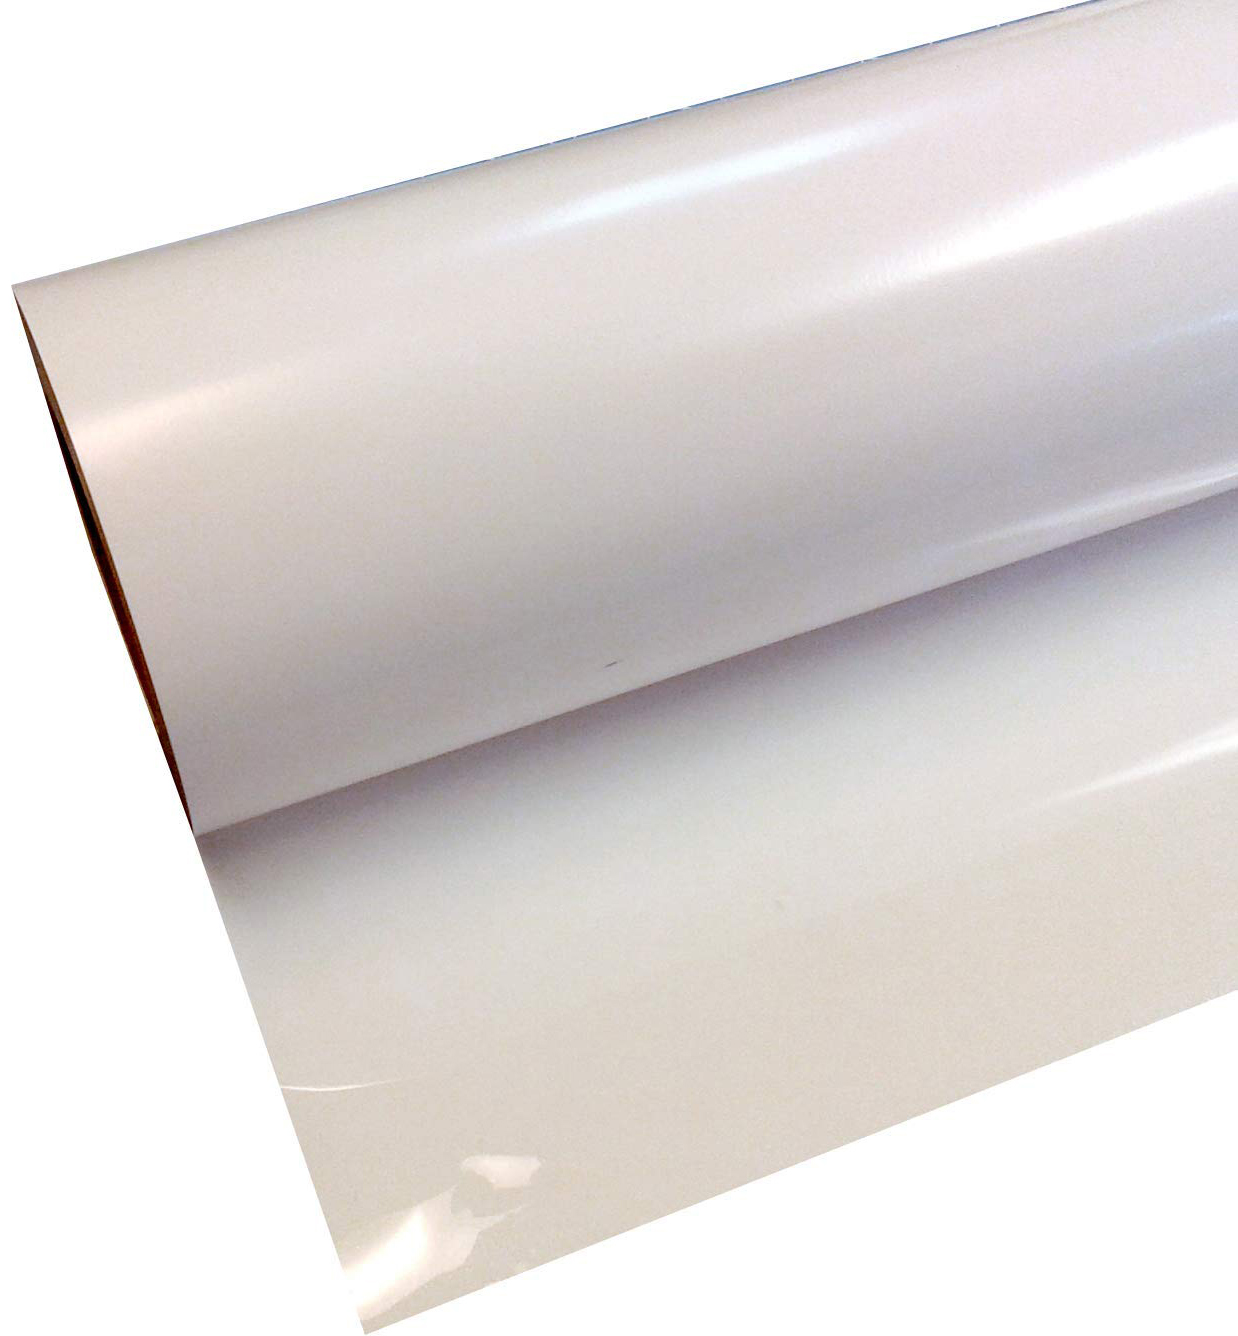 Specialty Materials ThermoFlexTURBO White - Specialty Materials ThermoFlex Turbo Heat Transfer Film